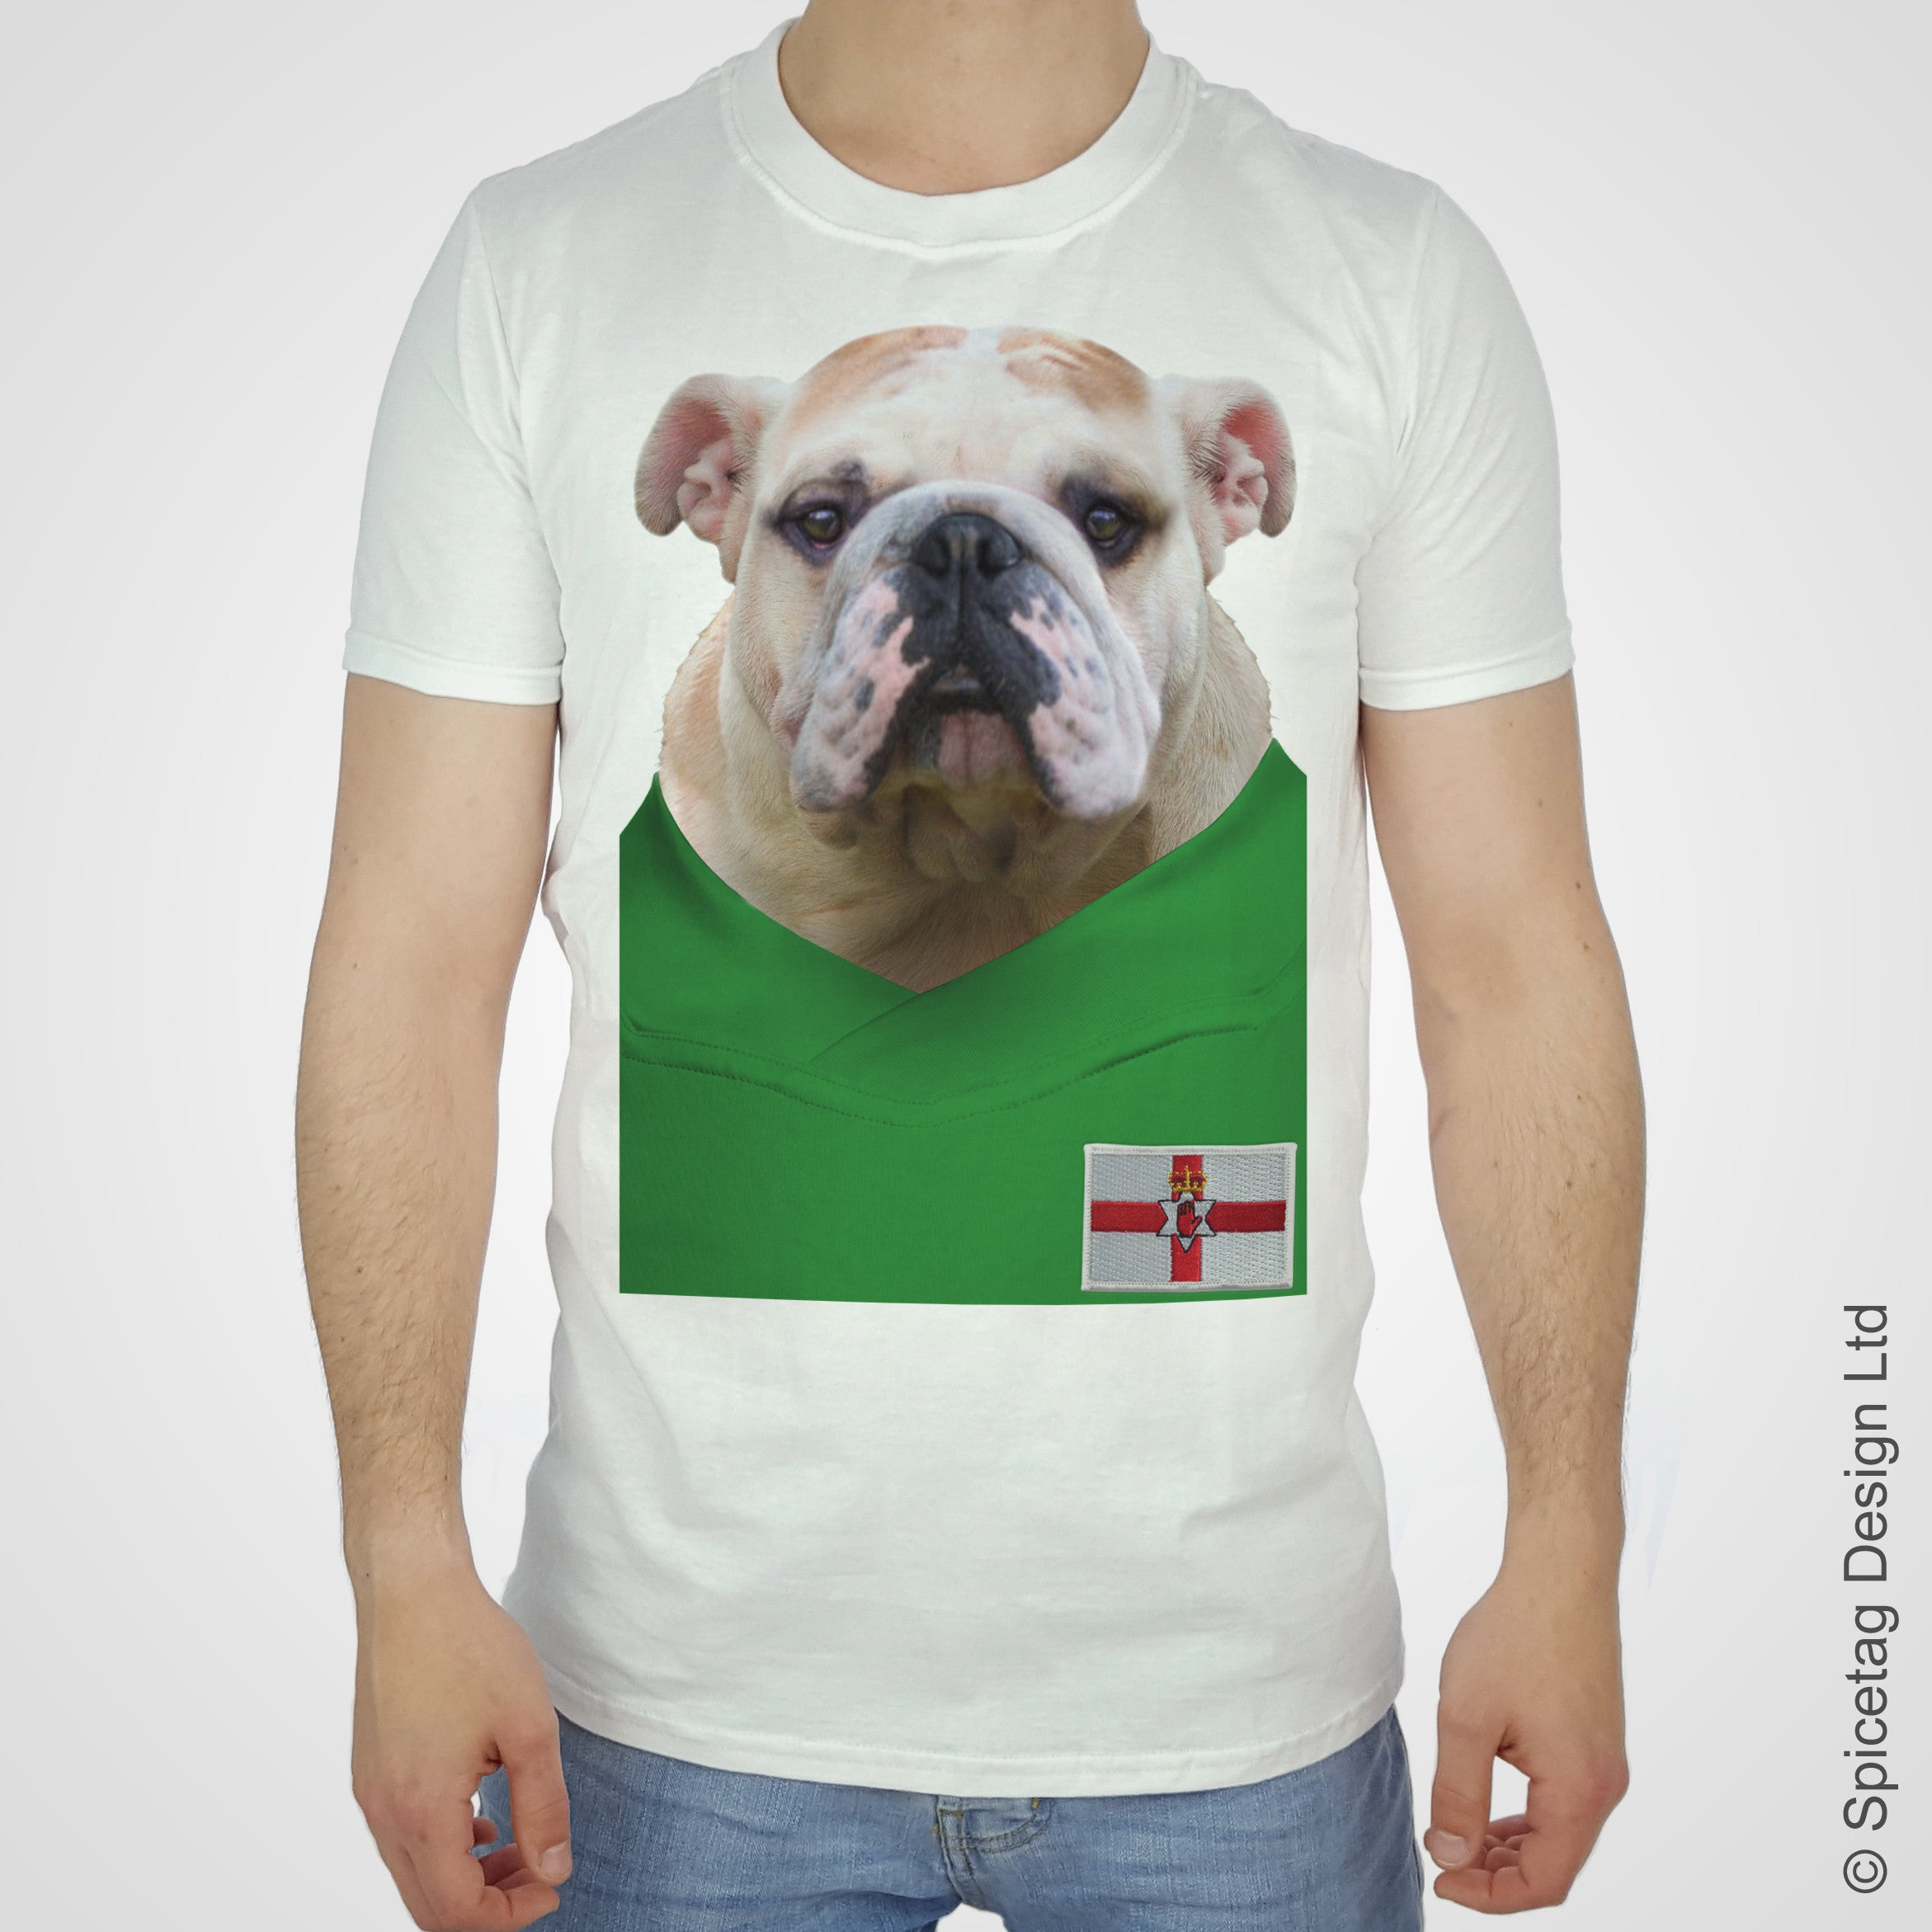 Northern Ireland Football Bulldog T-shirt